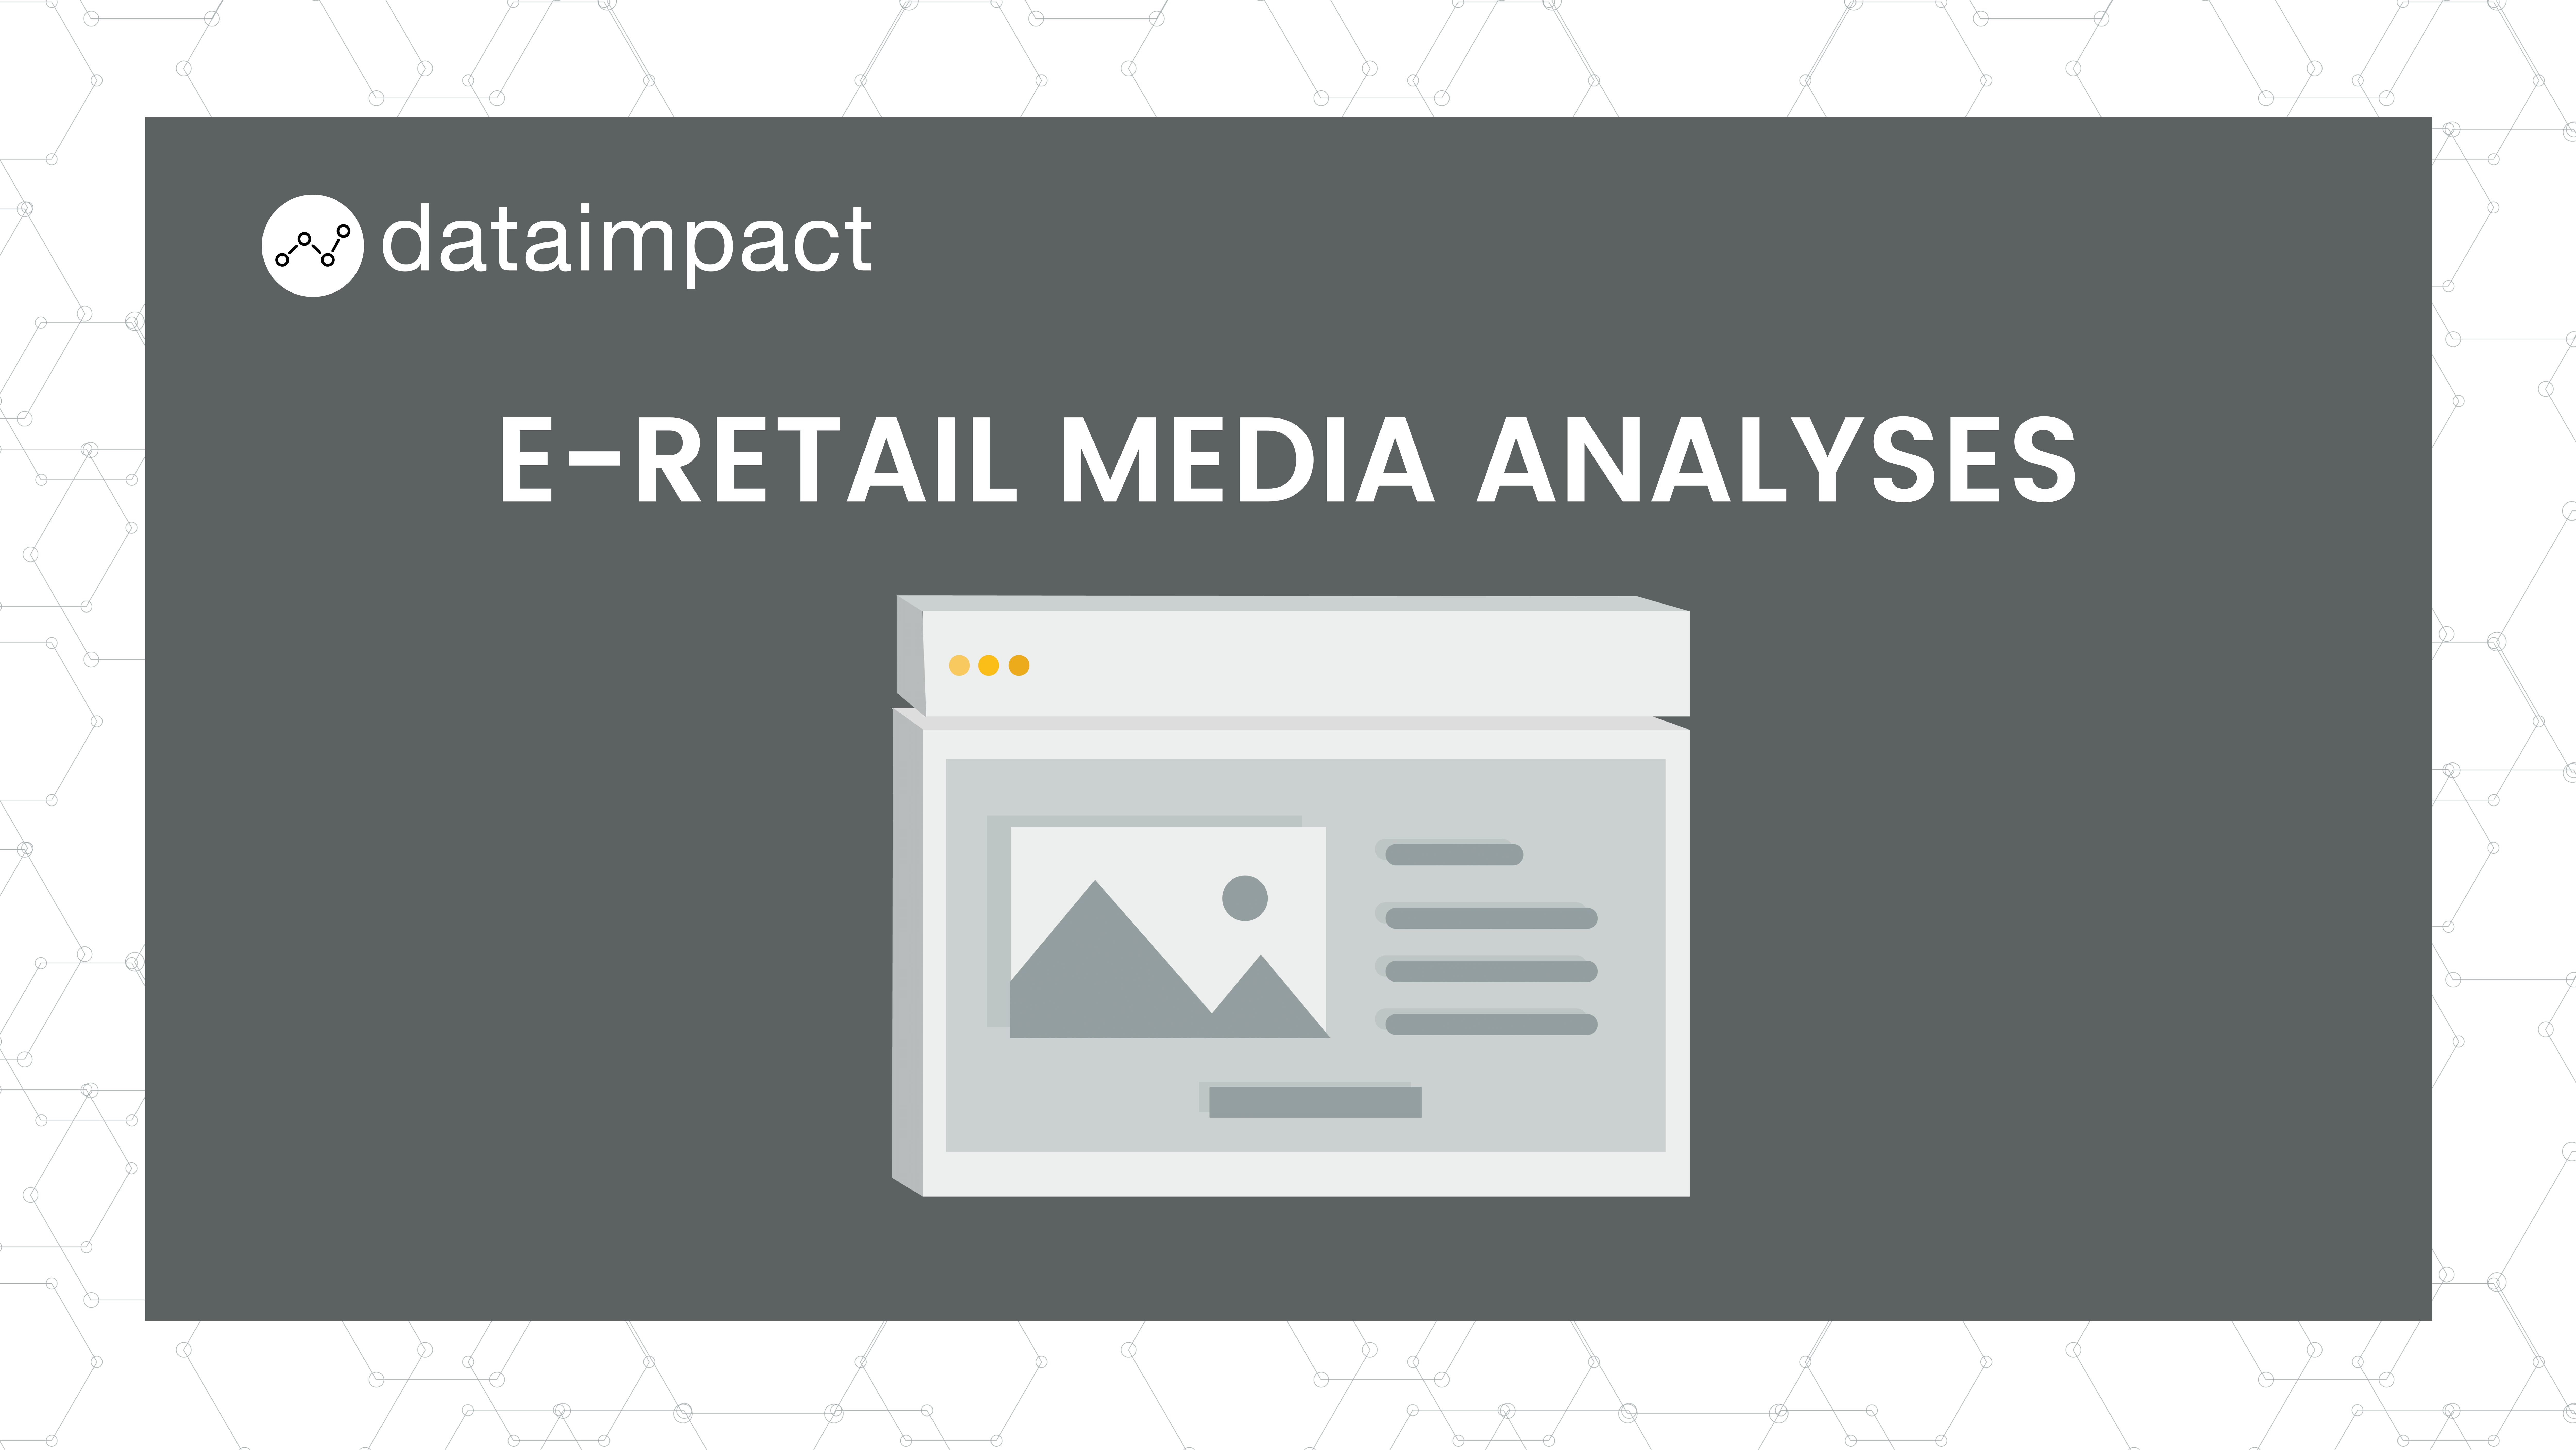 In-House Data online FMCG eRetail Media analyses